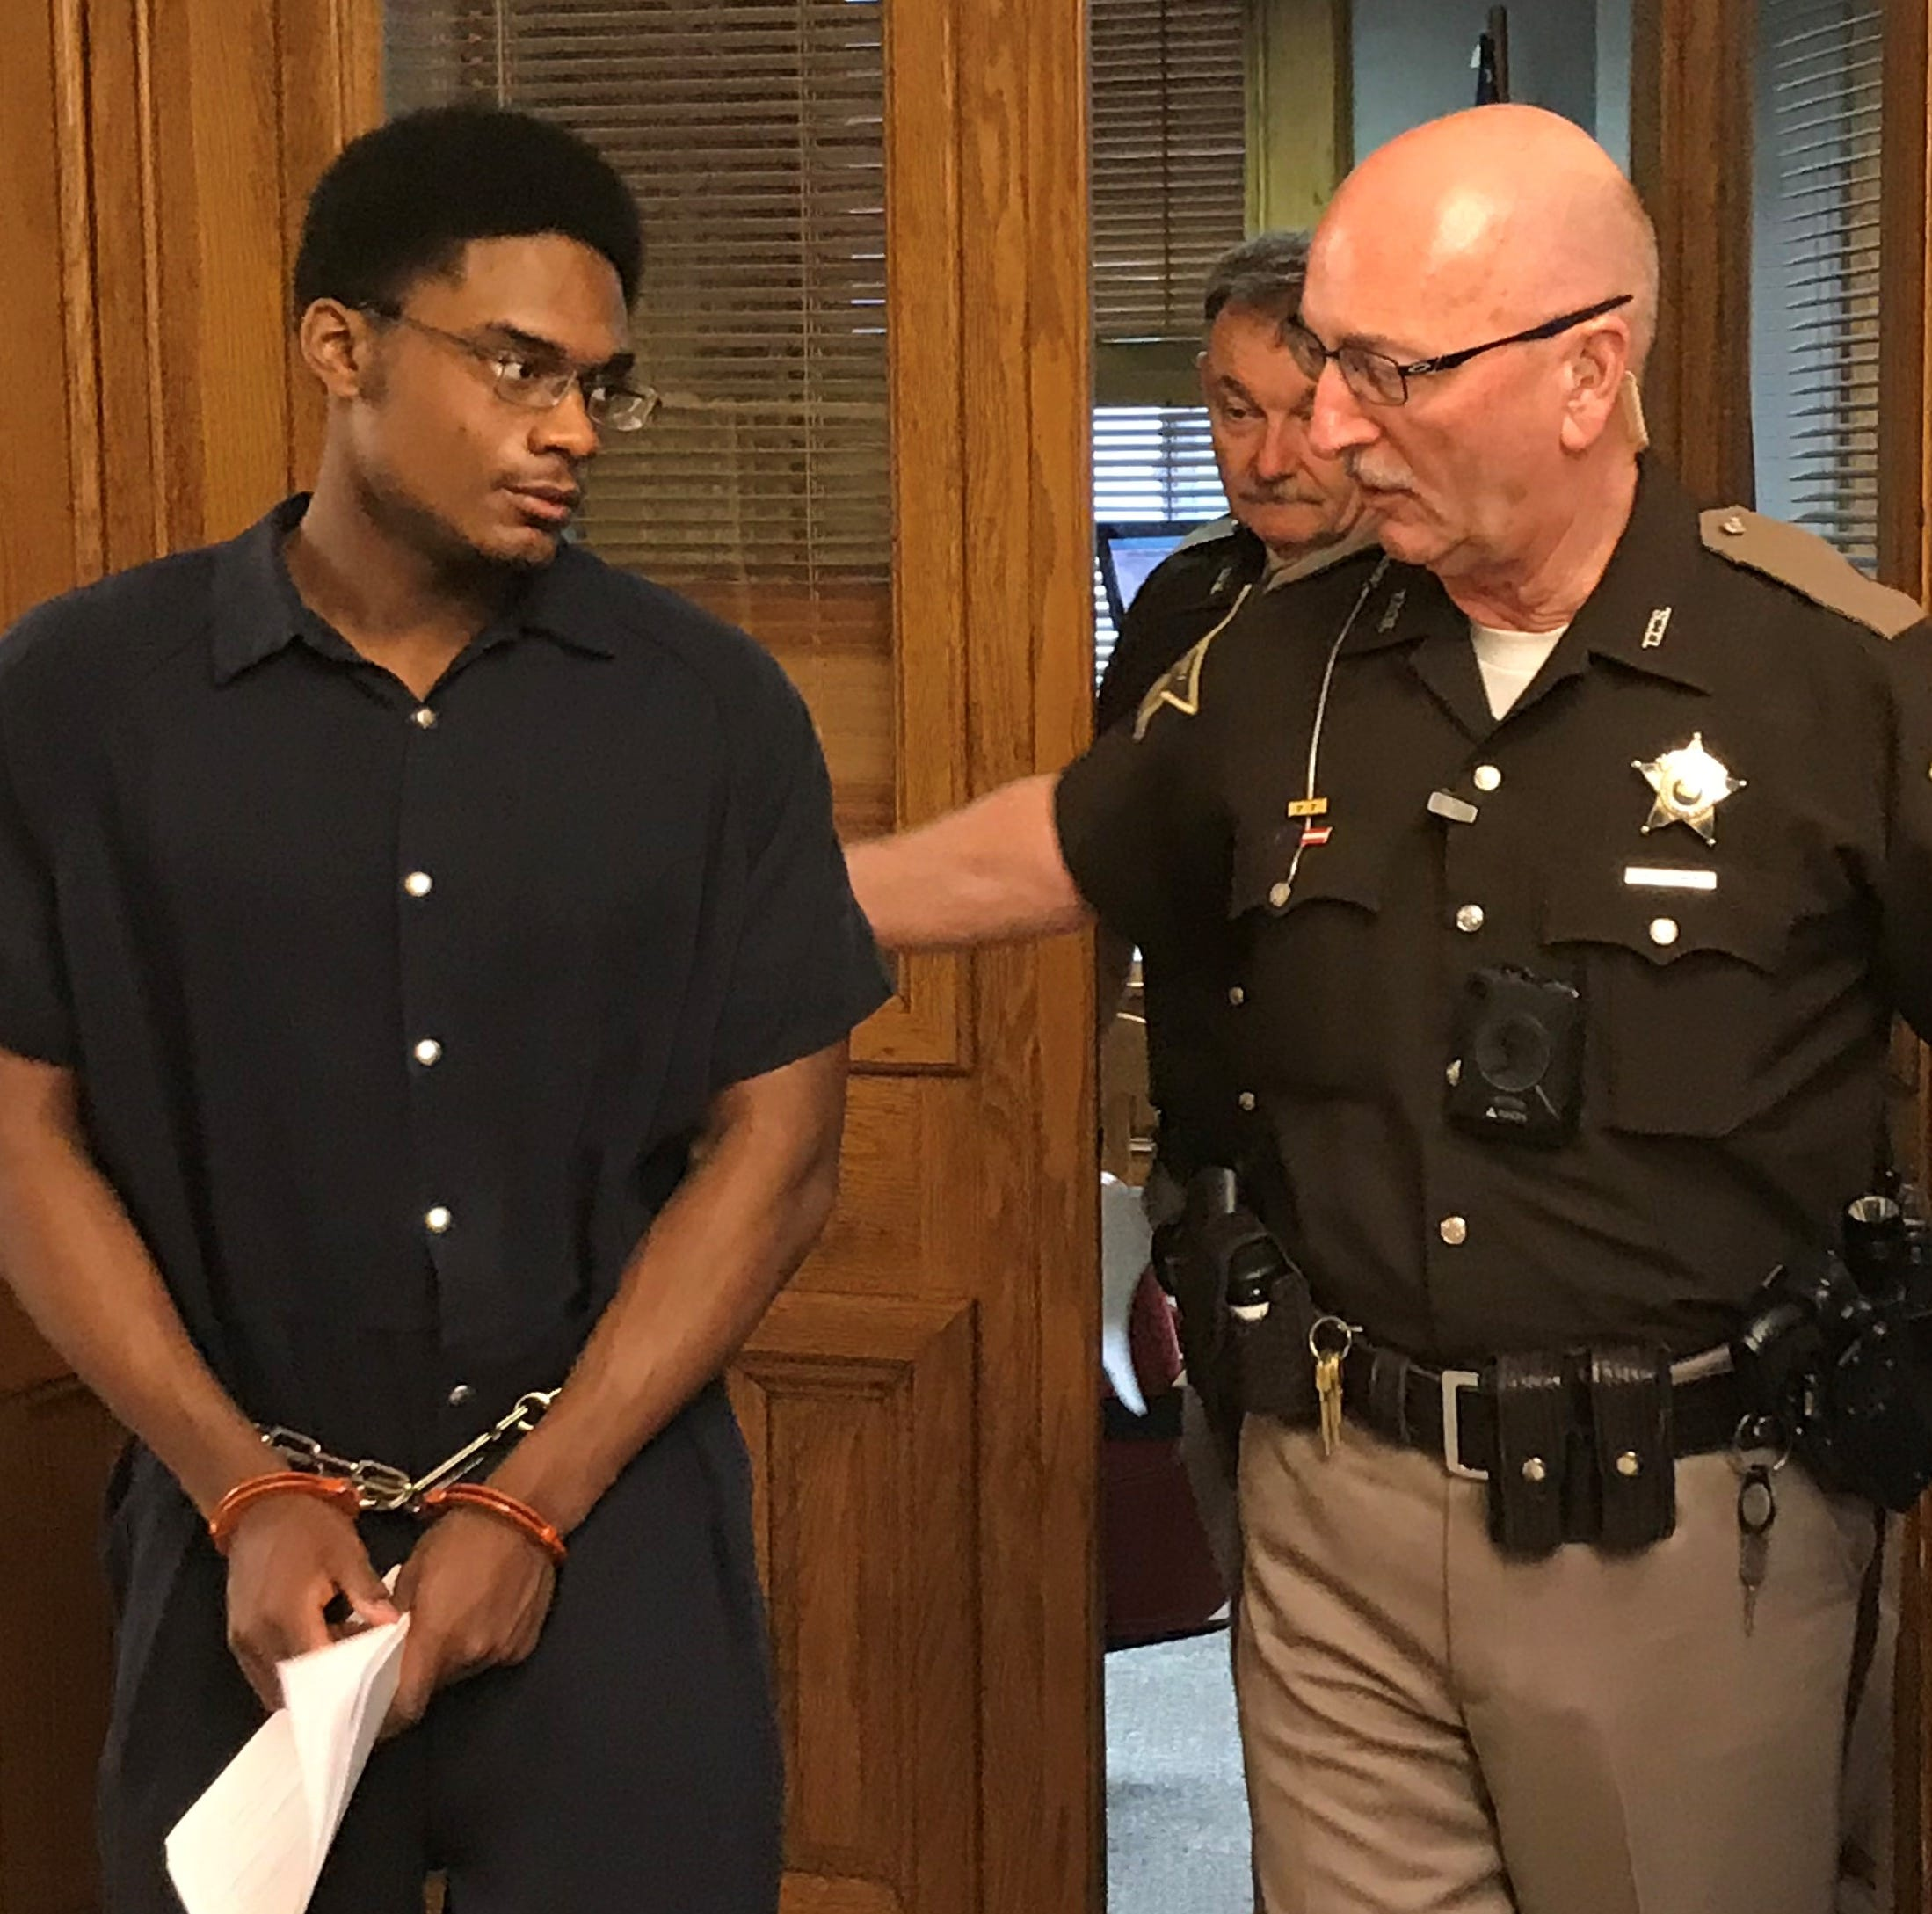 Printup faces fifth petition to revoke his probation